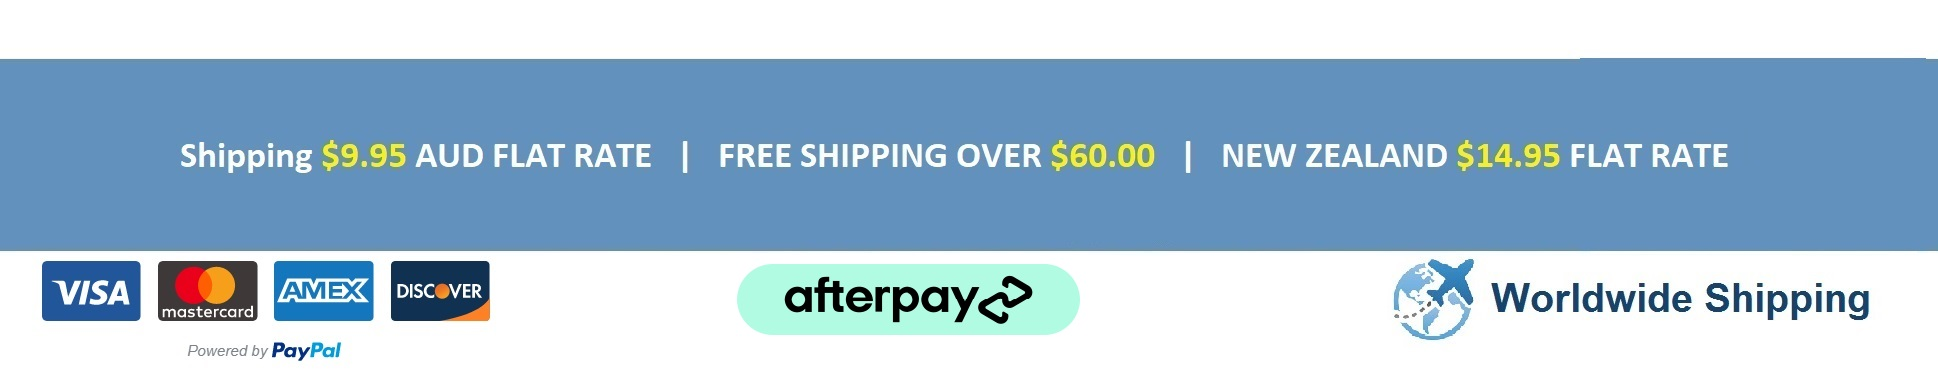 Podee-Shipping-NEW-1